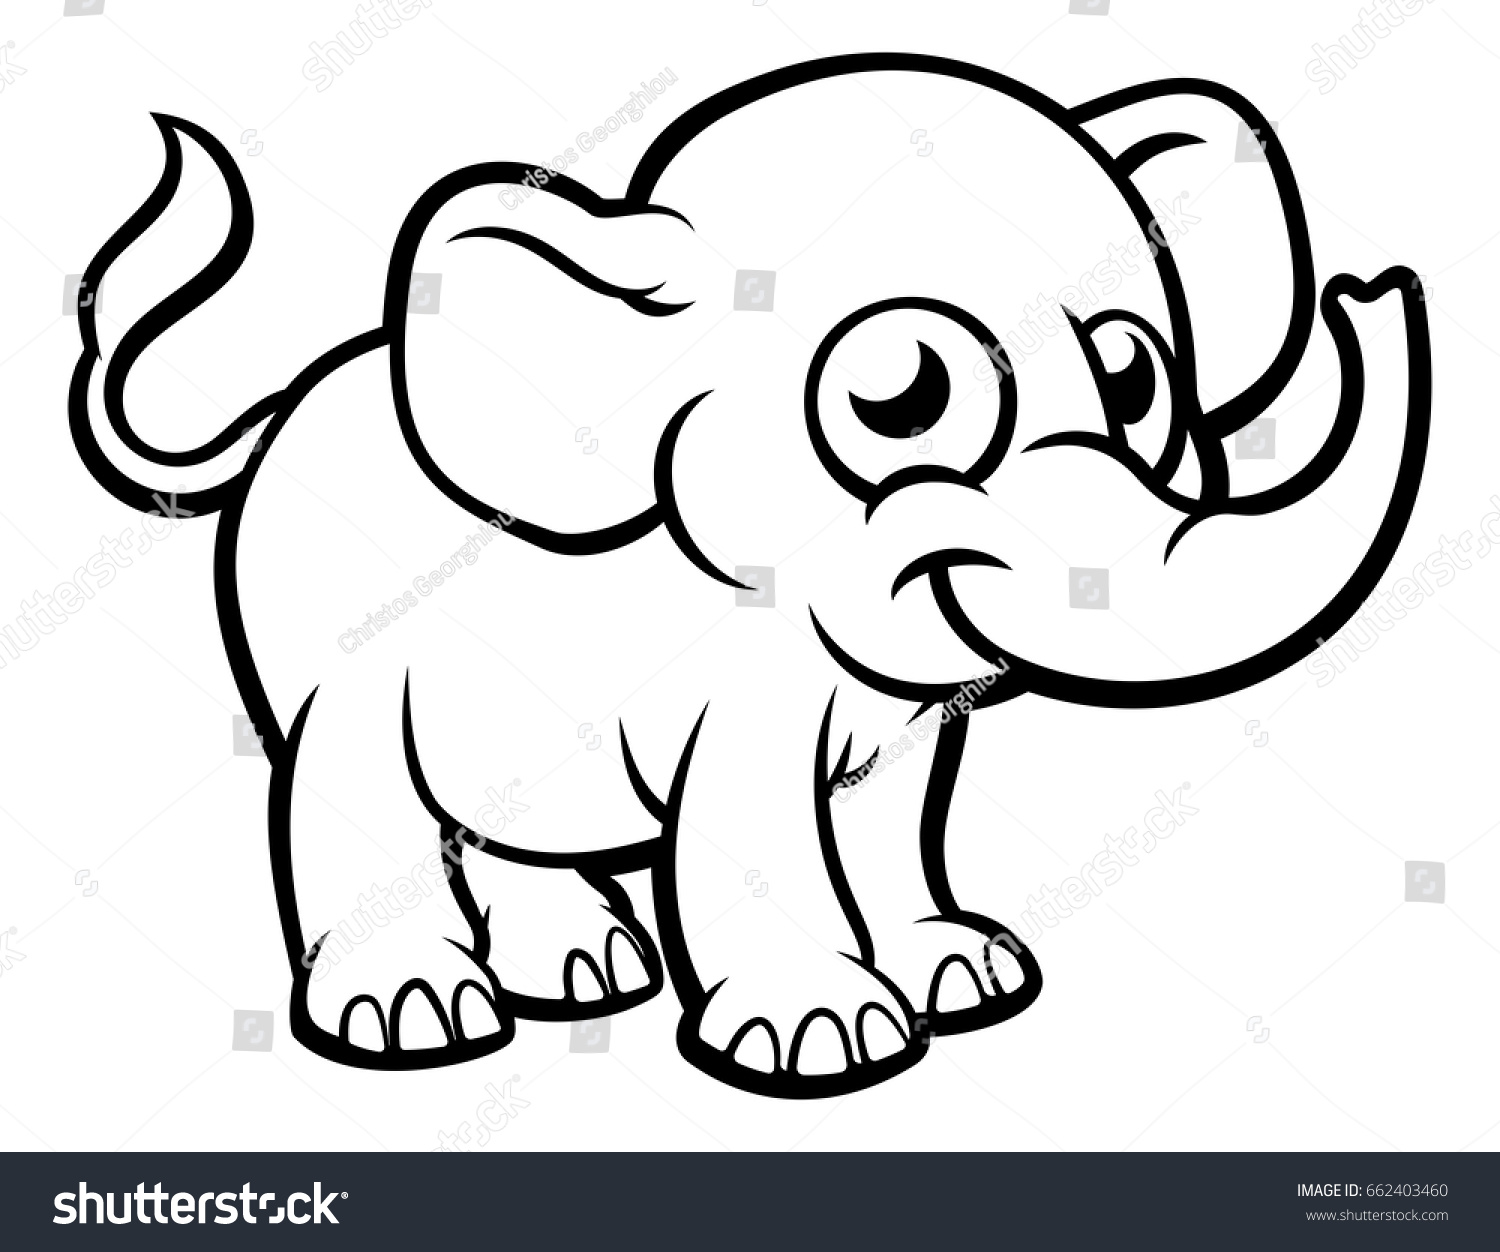 elephant cartoon character outline coloring illustration stock